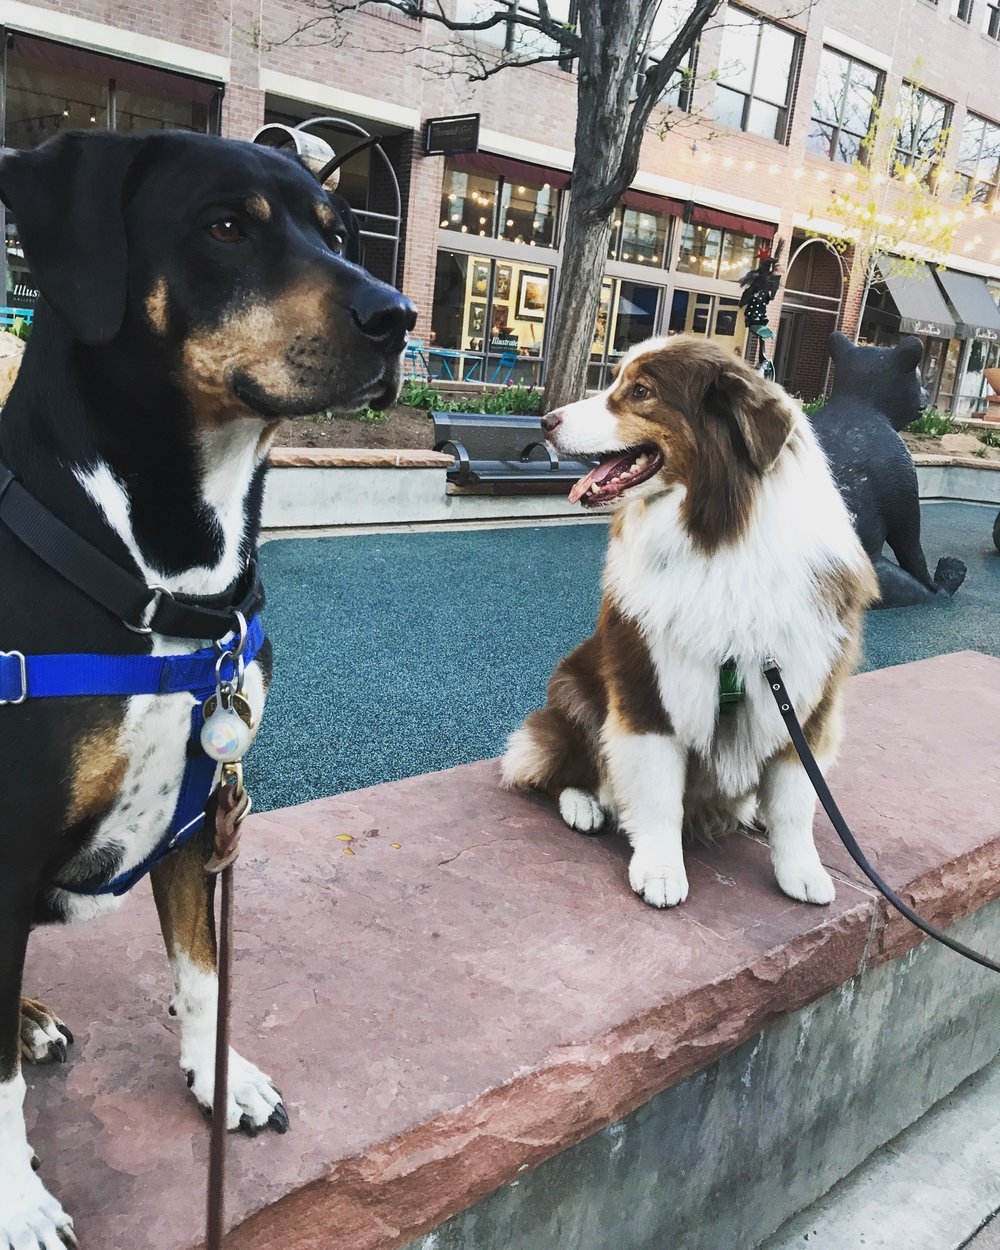 "I was going to add a picture of an embedded prong collar.  But as my intention is not so shock, scare, anger, or otherwise flame counterproductive emotions with this discussion, I decided to include a picture of our handsome boys rocking their harnesses in Old Town instead.  But you can always google ""embedded prong collar"" if you want."